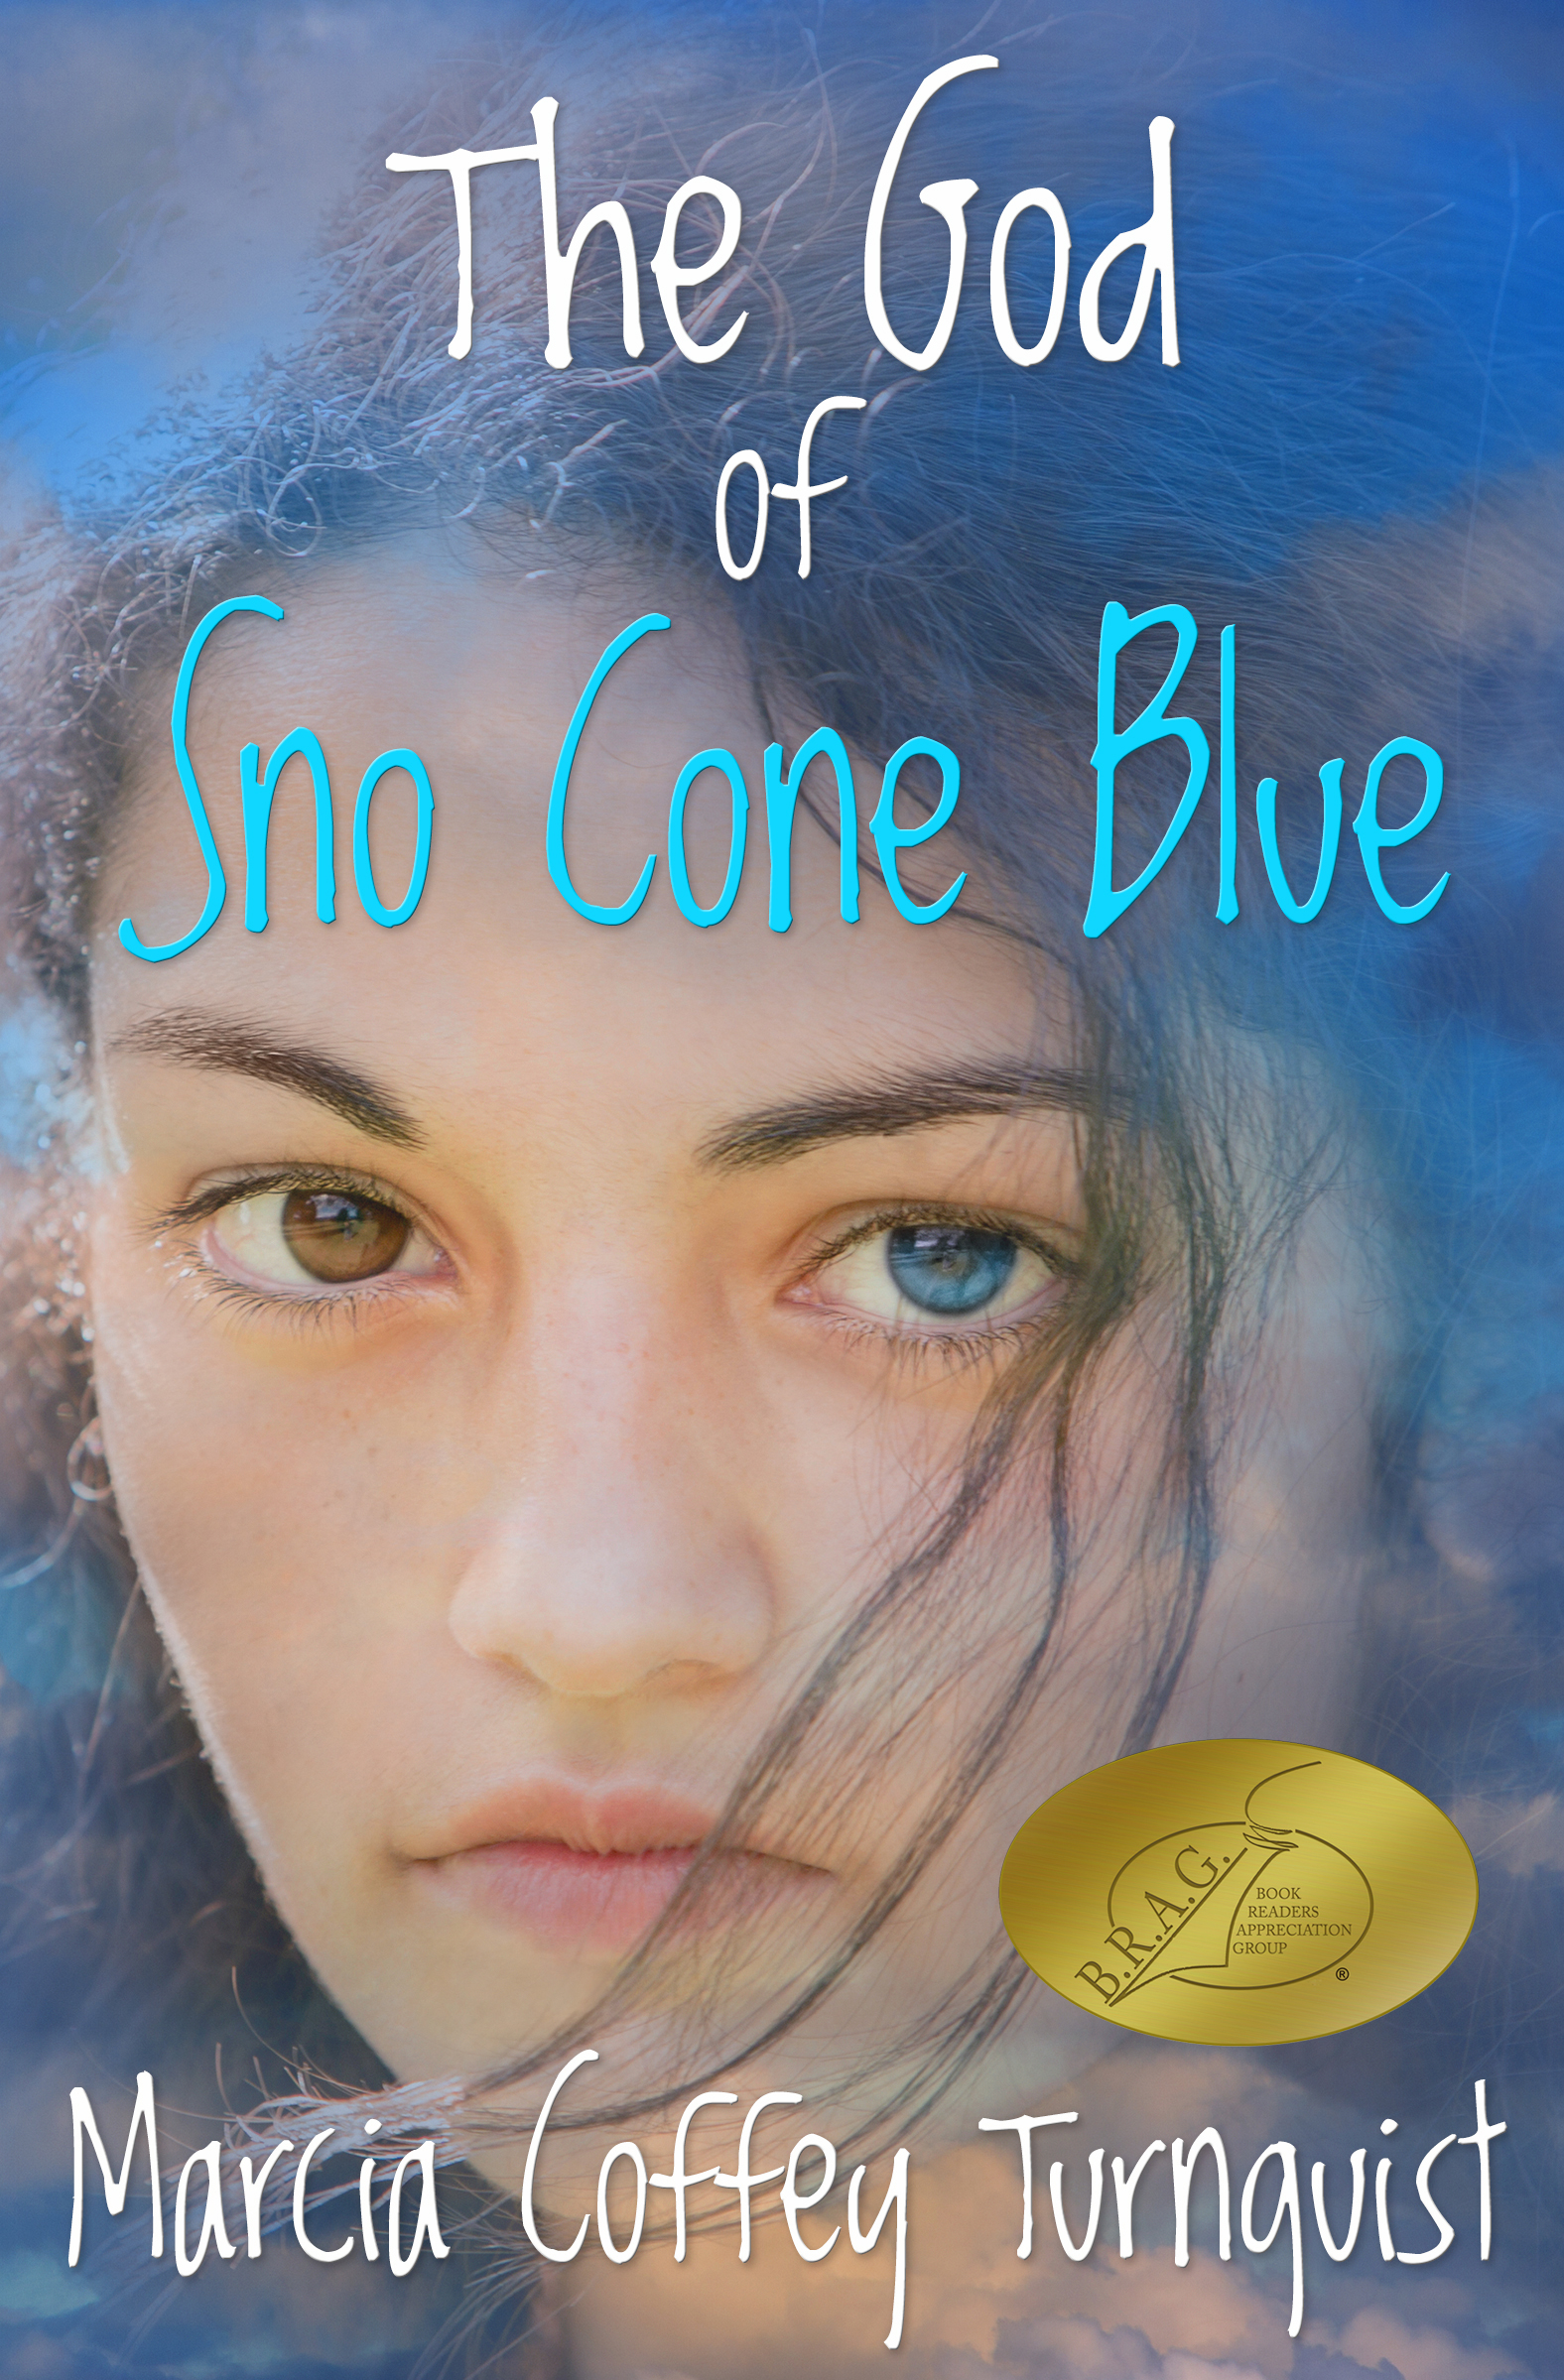 Cover of the novel The God of Sno Cone Blue with medallion.